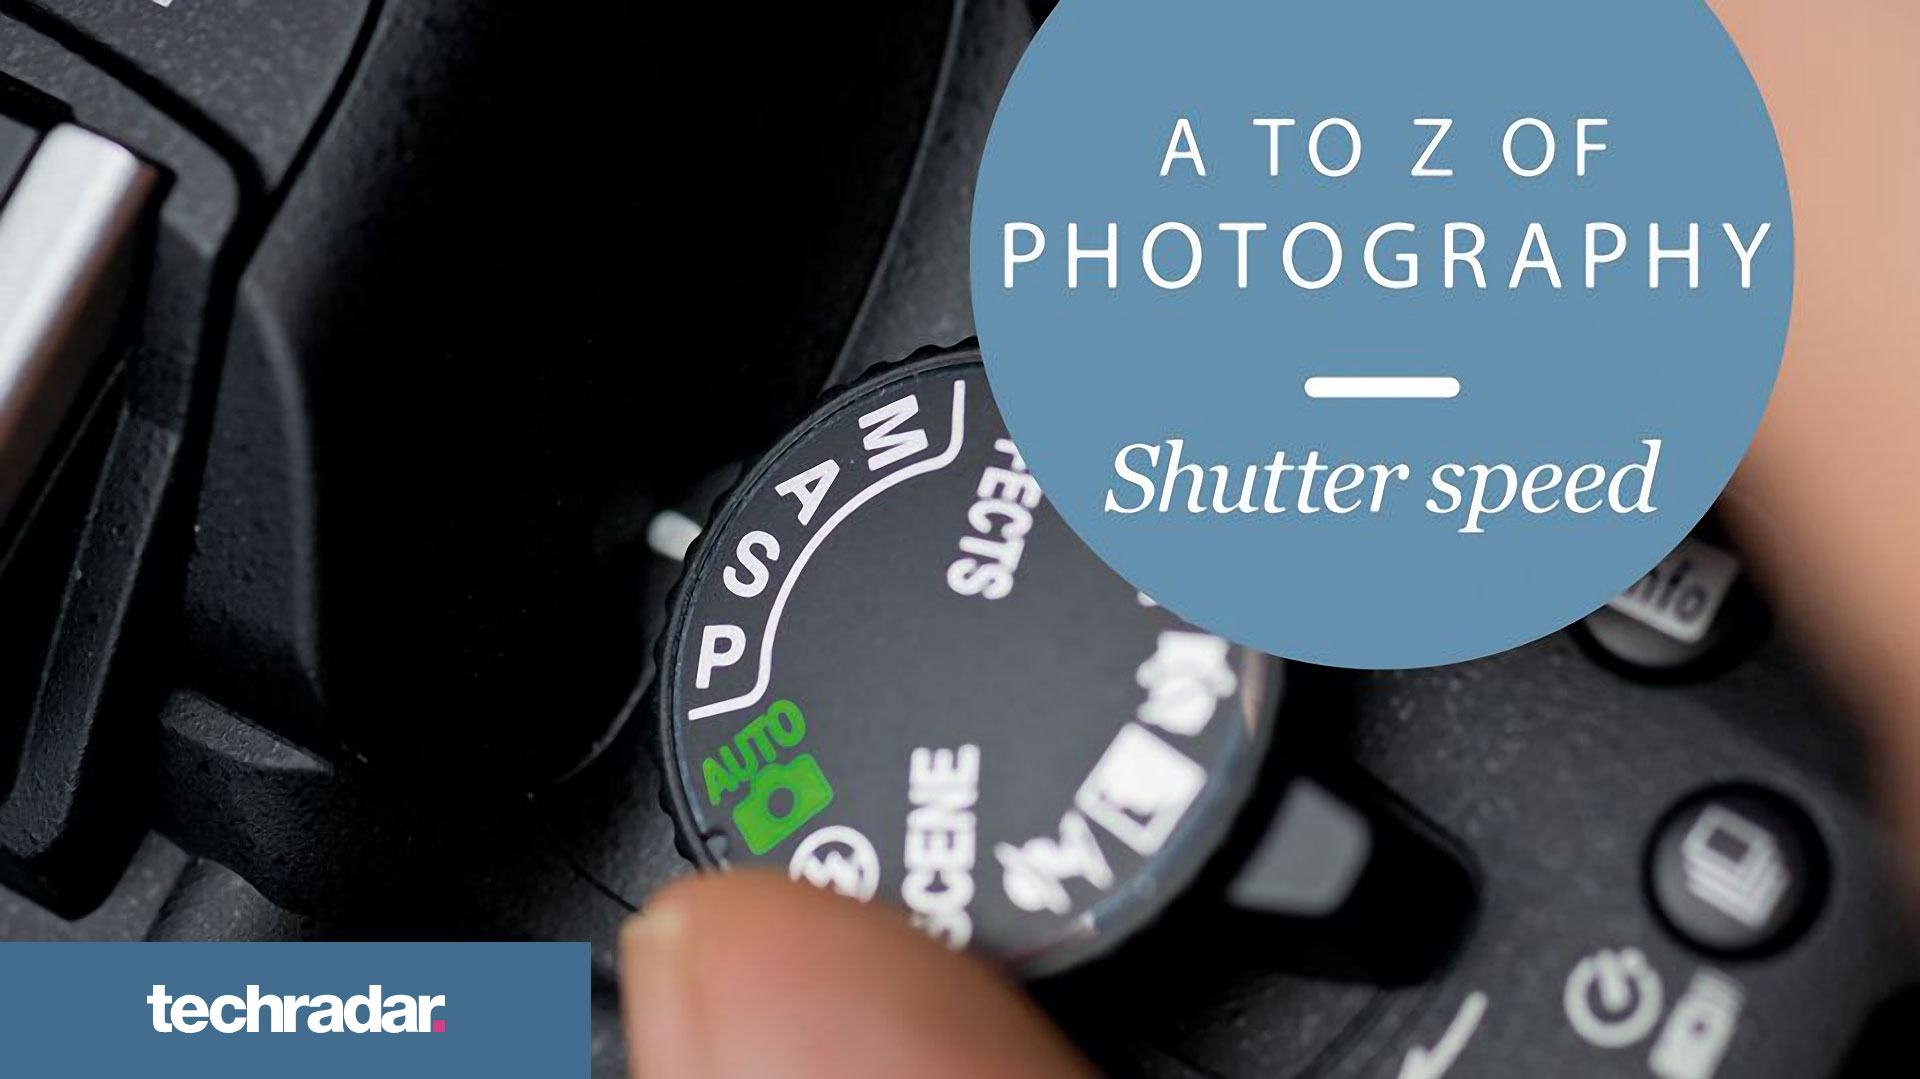 TechRadar A-Z Shutter speed